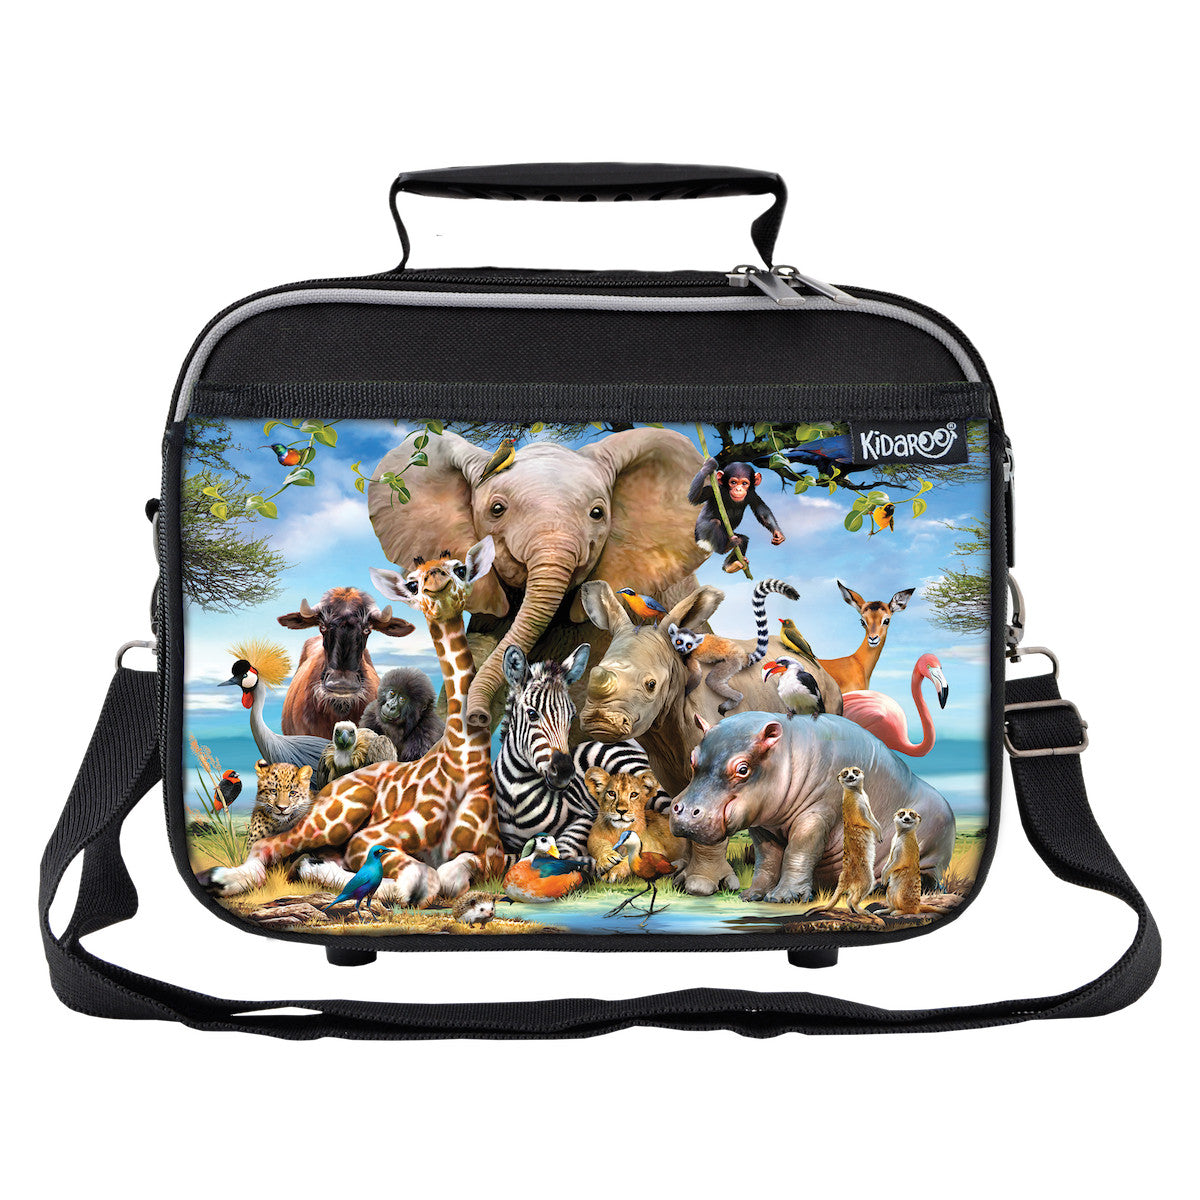 Safari Smile Zoo Animals School Lunchbox, Tote Bag for Boys, Girls, Kids